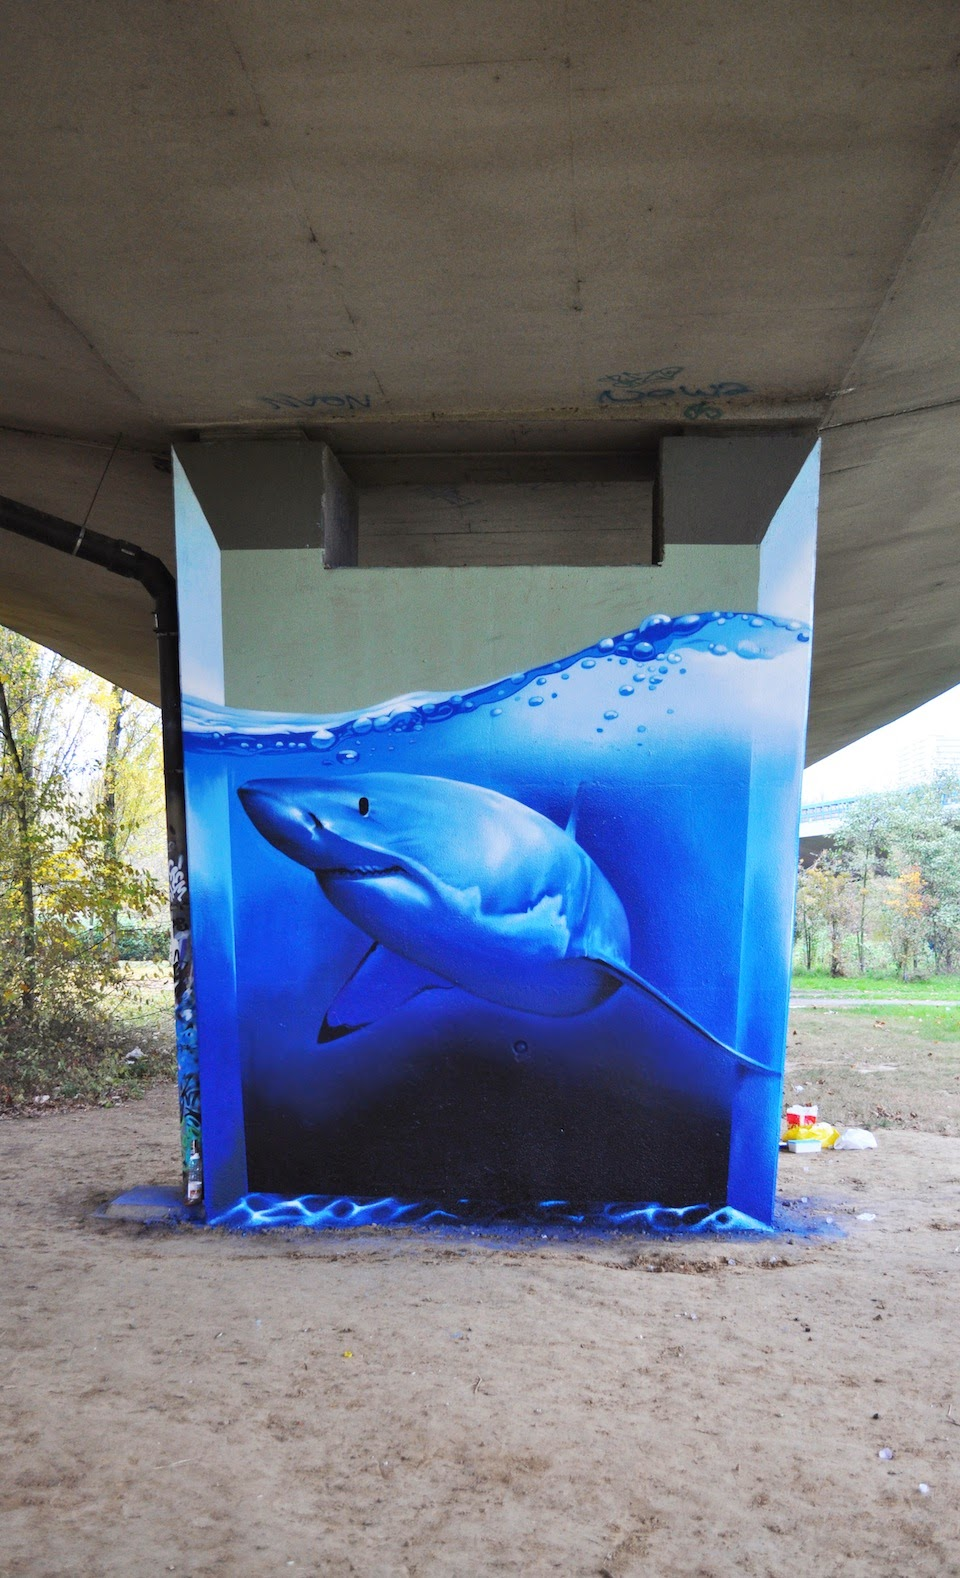 3d Shark Painting by Street Artist Smates